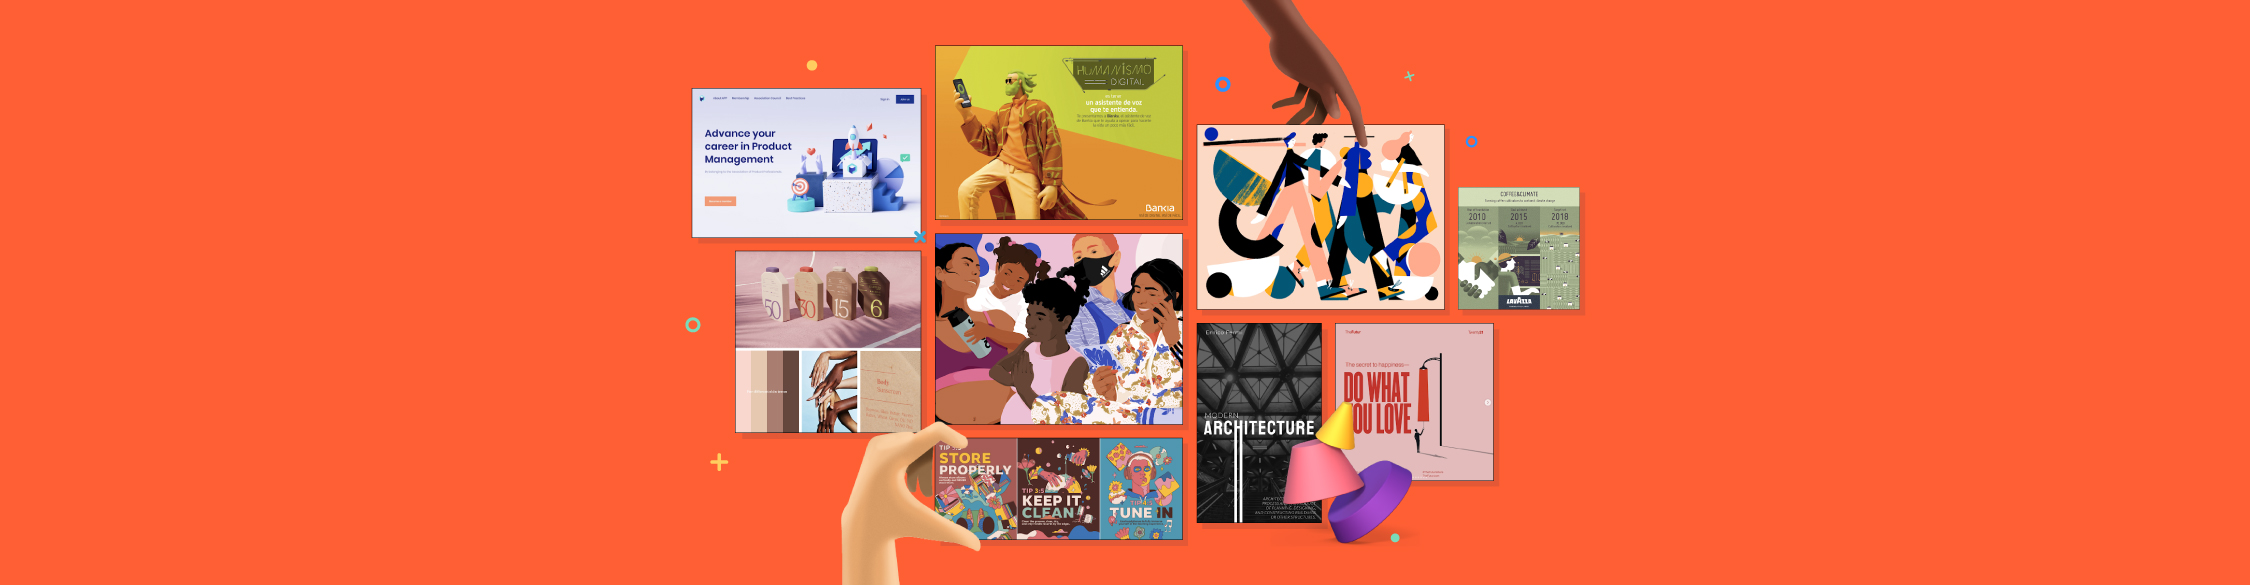 15 Inspiring Graphic Design Trends for 2021